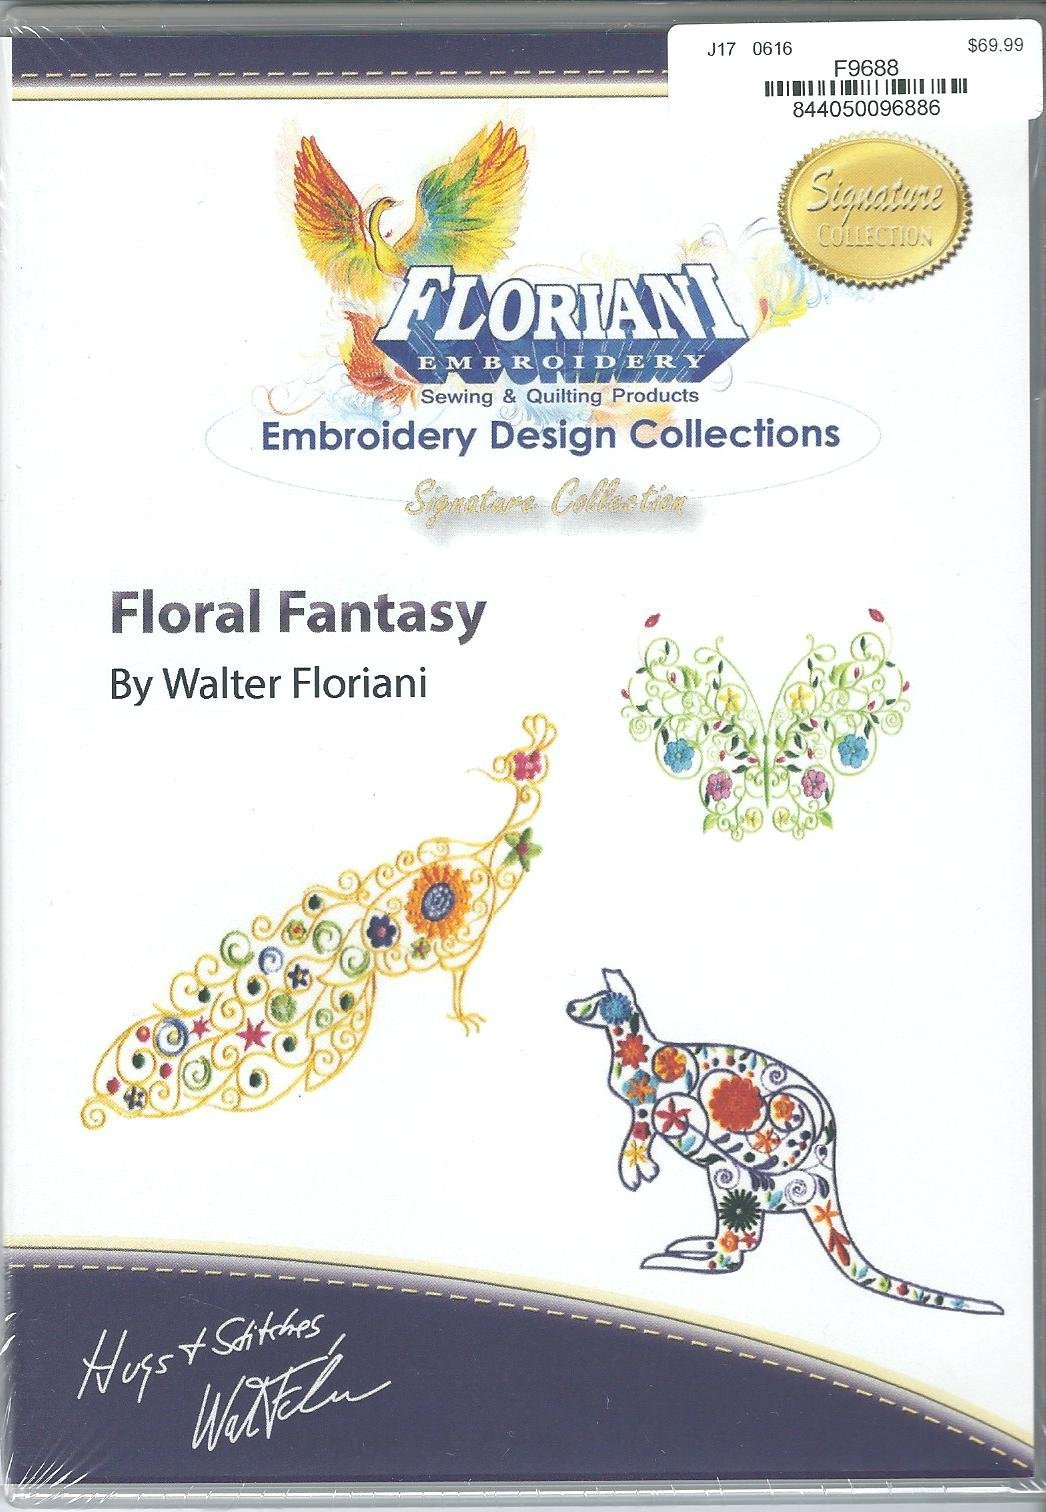 RNK- Floral Fantasy Embroidery Design Collection